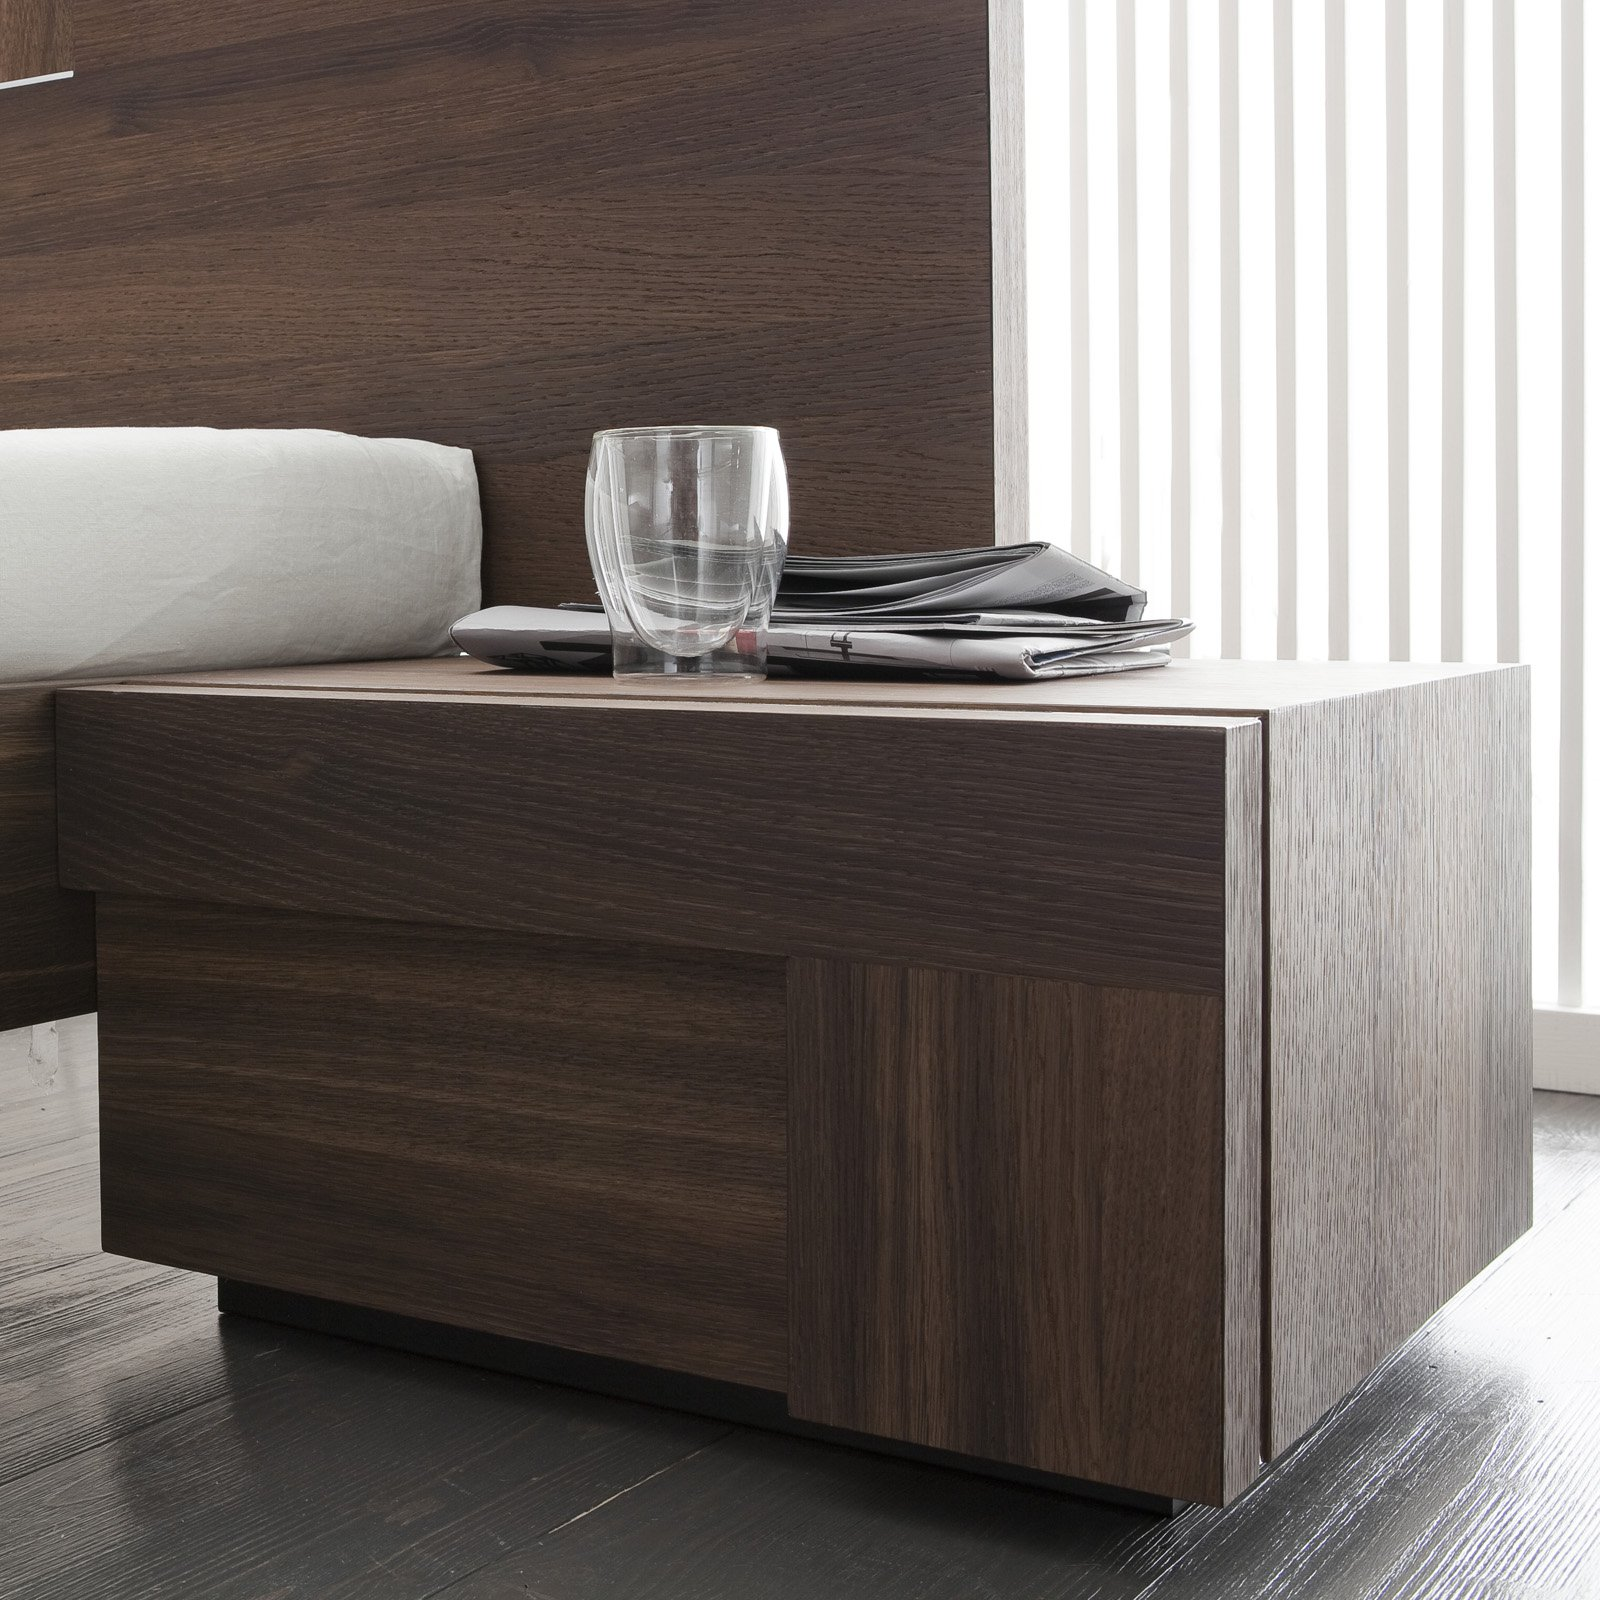 Rossetto Air Right 1 Drawer Nightstand by Rossetto USA